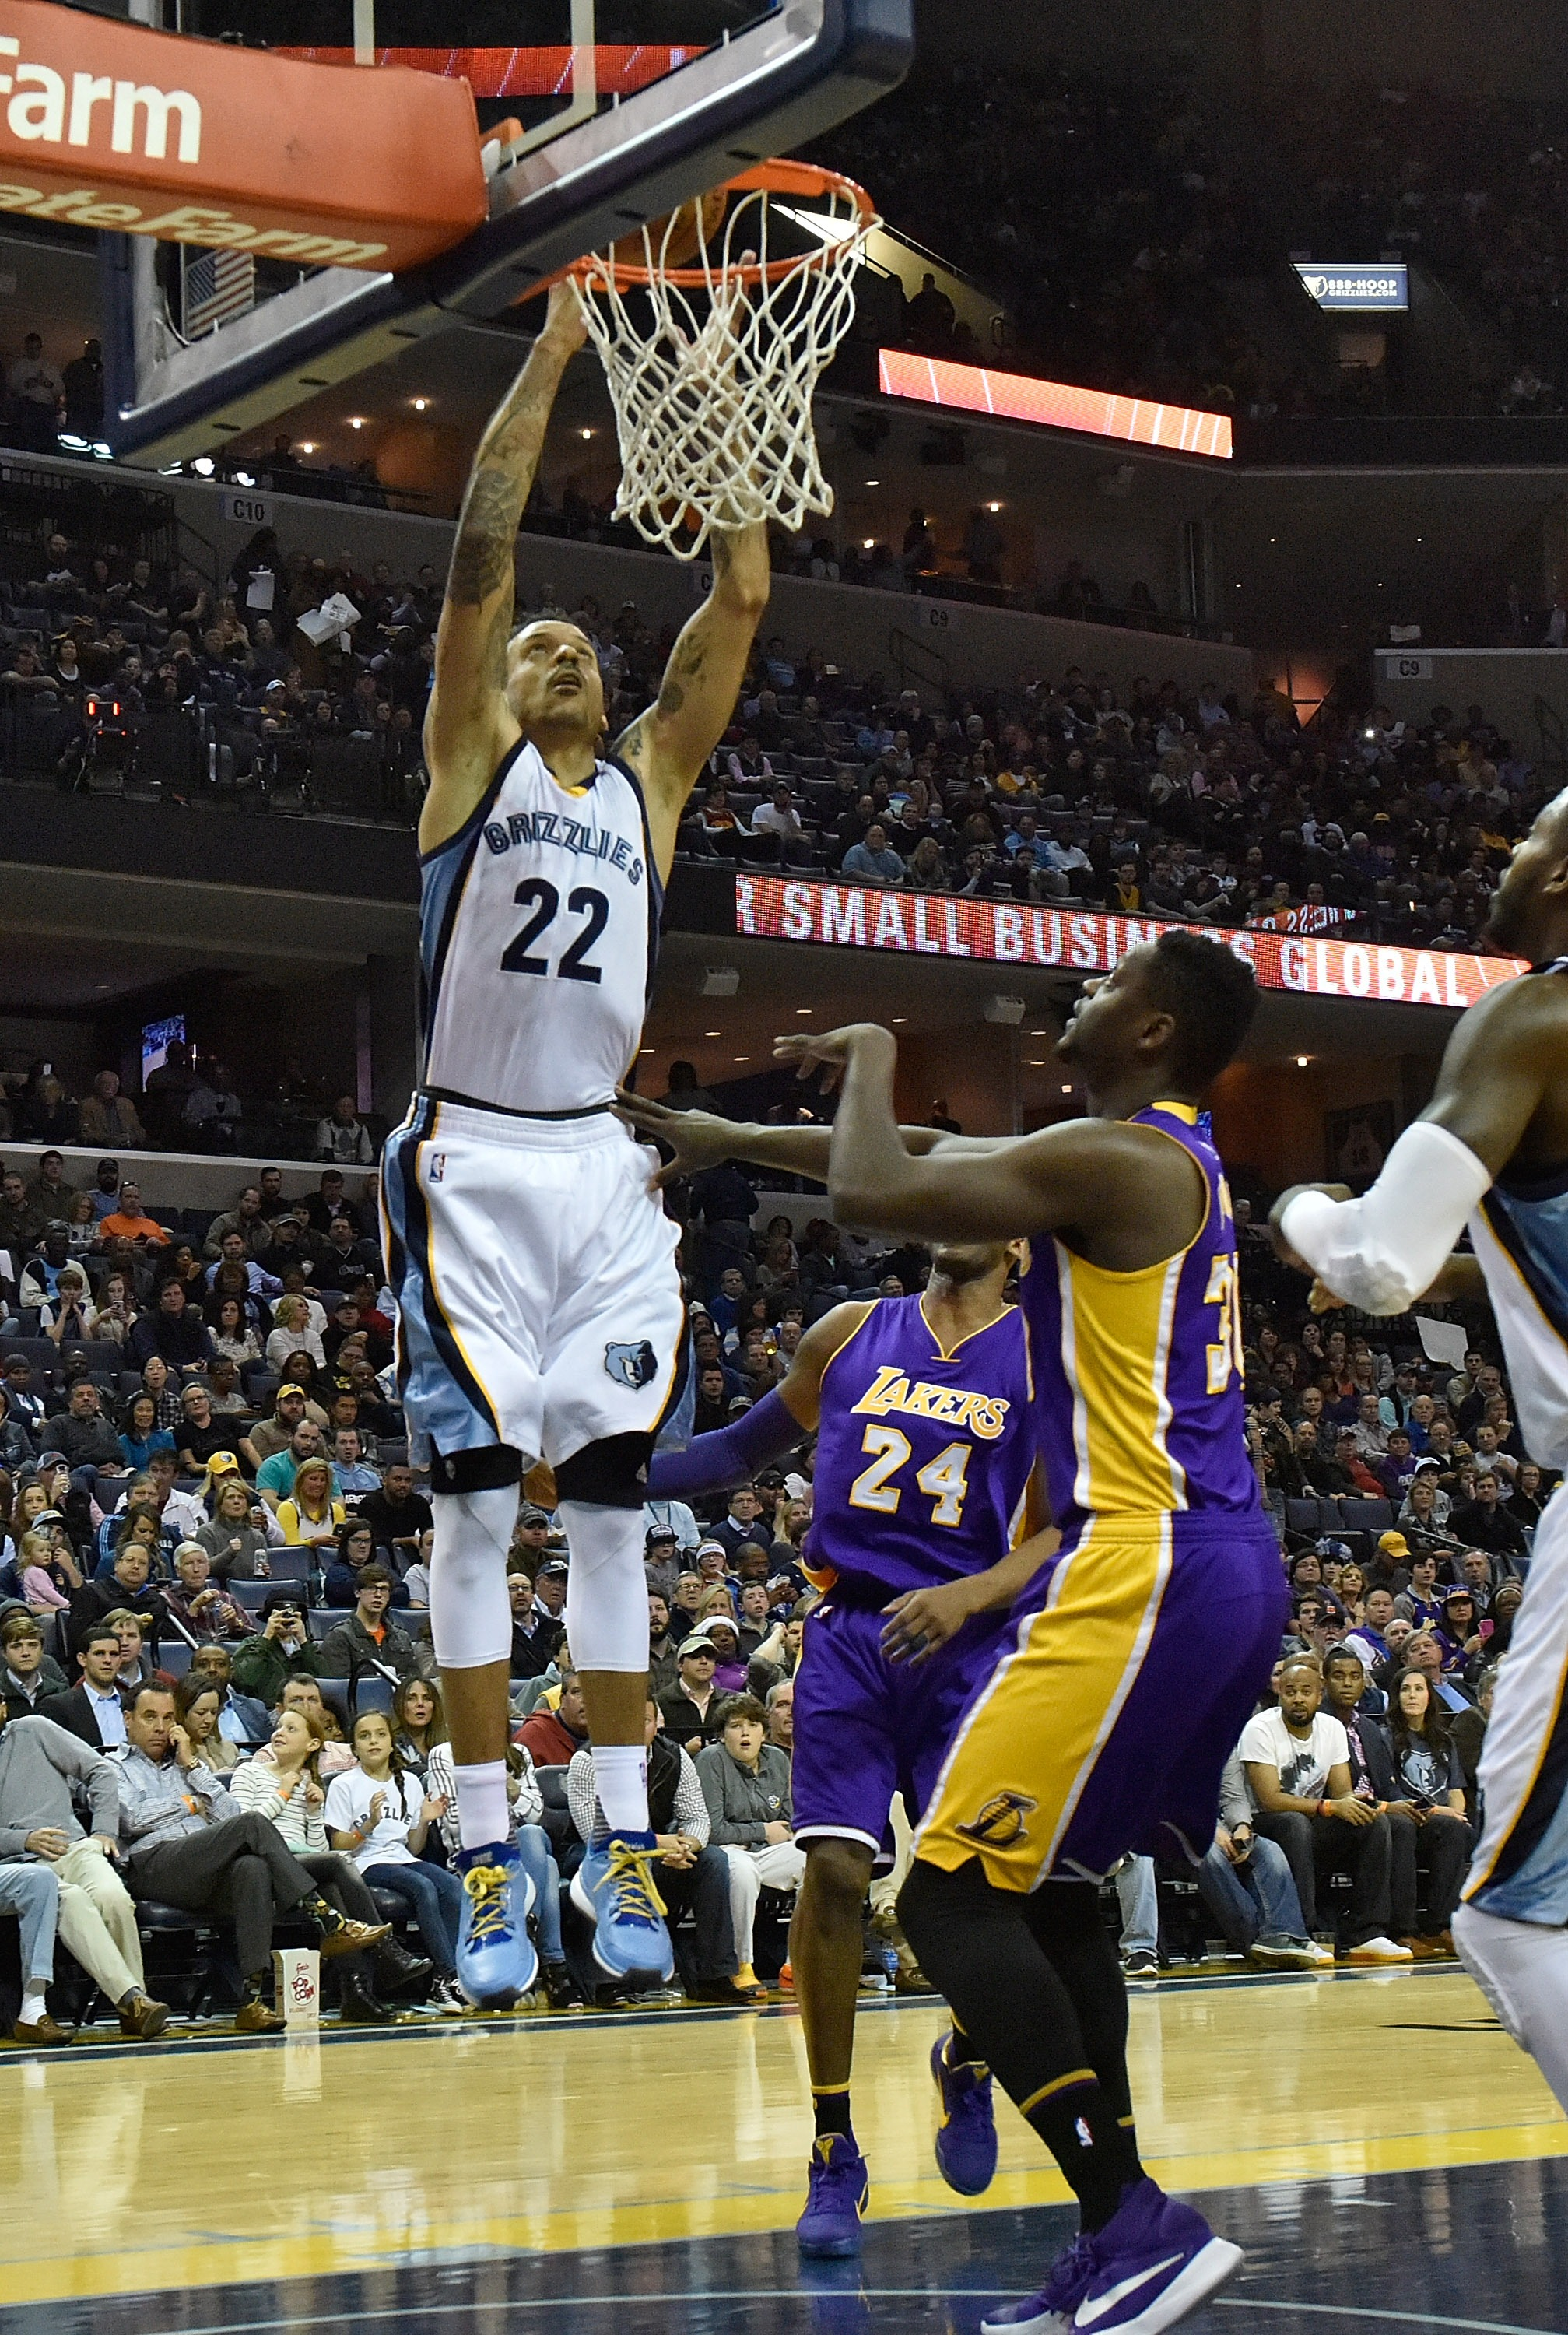 MEMPHIS, TN - FEBRUARY 24:  Matt Barnes #22 of the Memphis Grizzlies dunks the ball against Julius Randle #30 of the Los Angeles Lakers during the first quarter at FedExForum on February 24, 2016 in Memphis, Tennessee. (Photo by Frederick Breedon/Getty Im